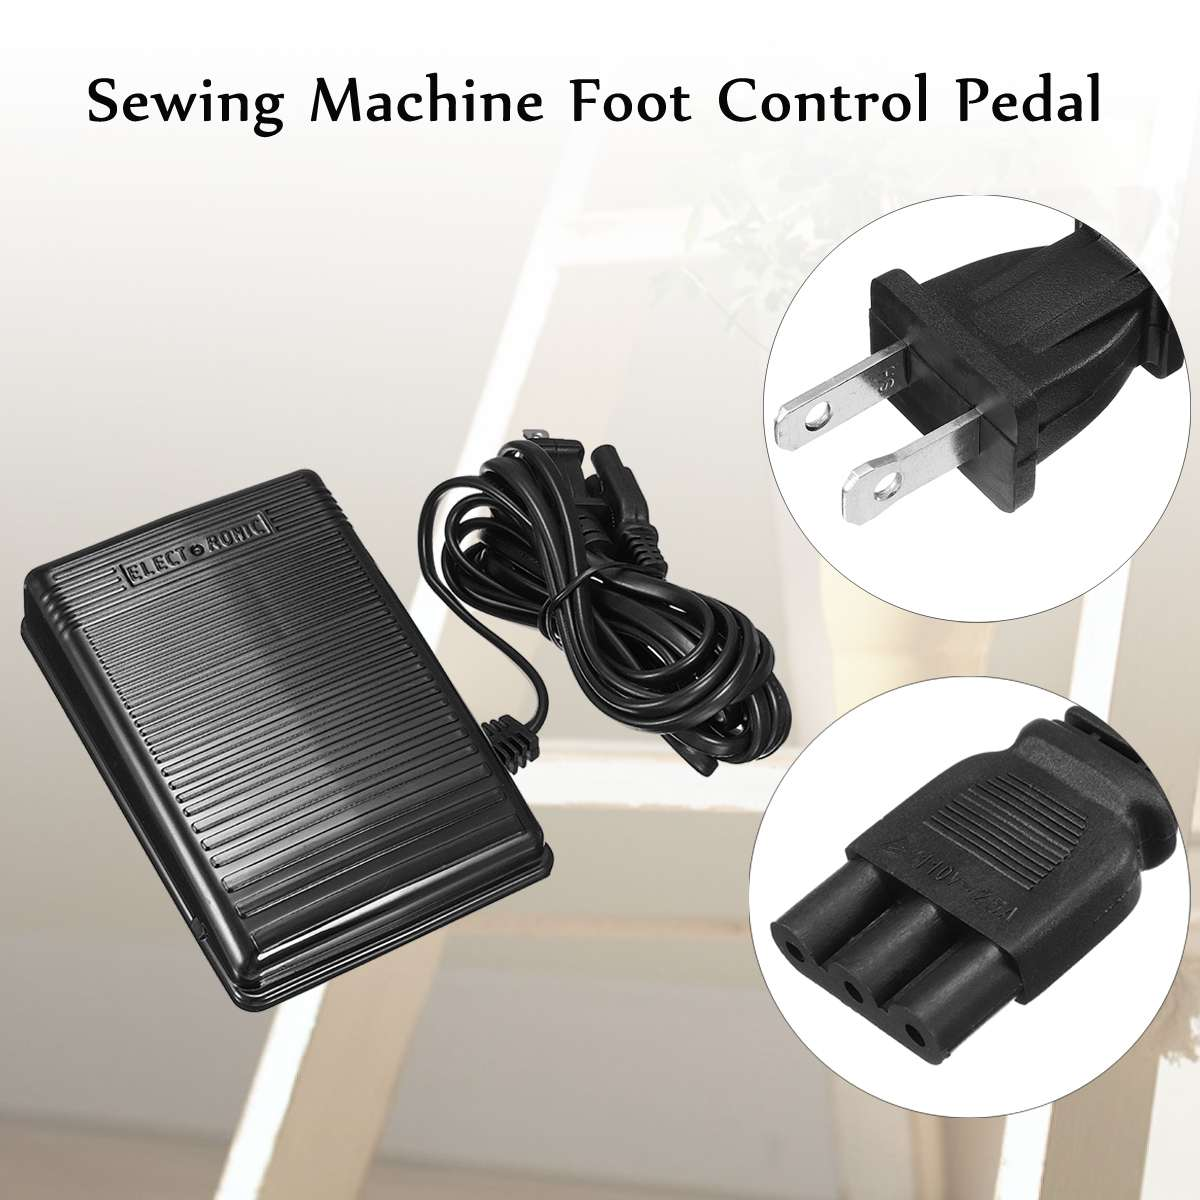 Household Sewing Machine Foot Speed Control Pedal For Babylock Elna  Singer Vikings Heavy For Sewing Tools  Adjustor